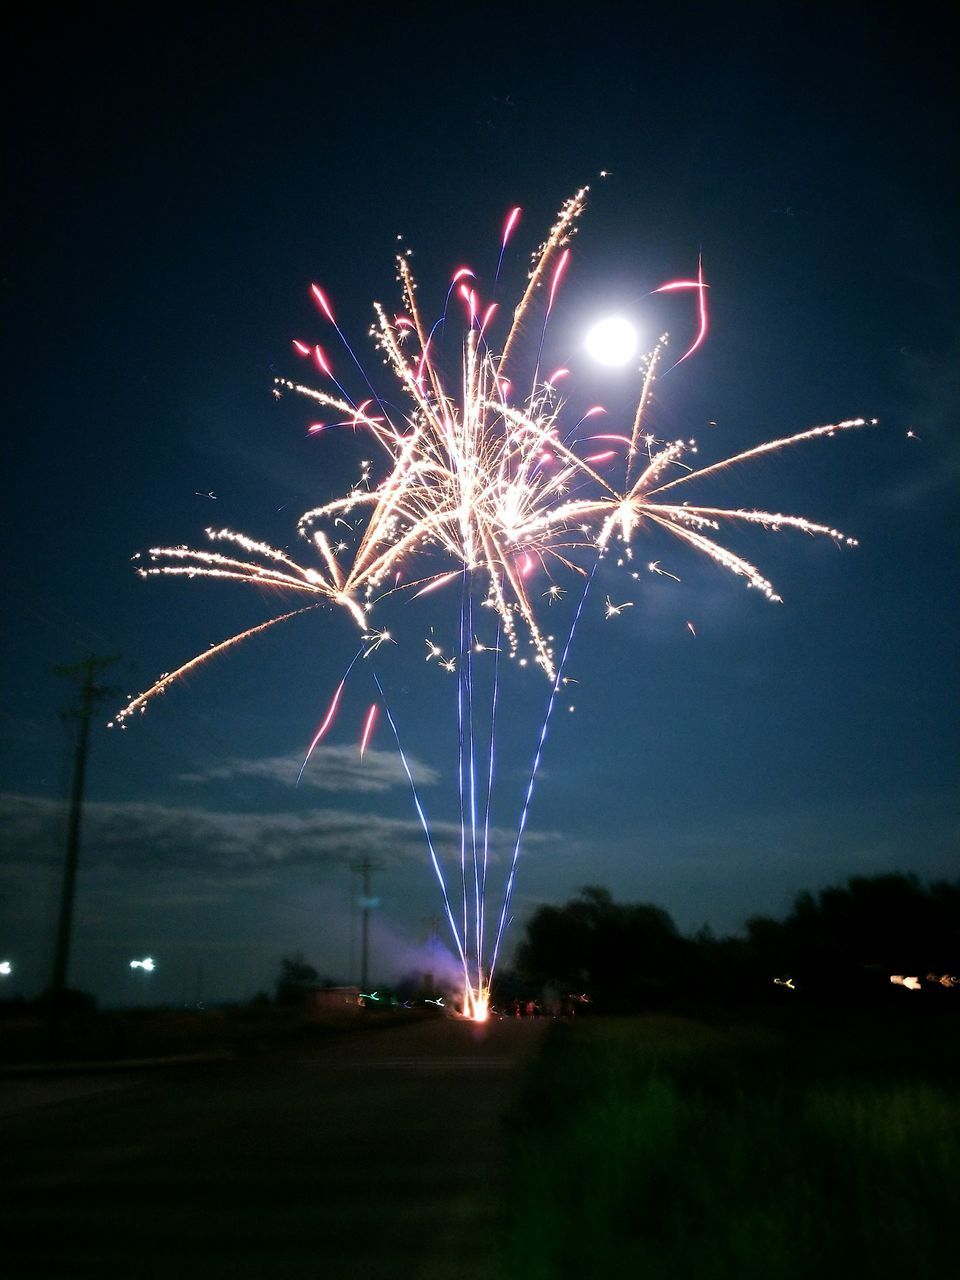 night, firework display, celebration, arts culture and entertainment, illuminated, firework - man made object, event, long exposure, exploding, sky, glowing, low angle view, outdoors, firework, no people, motion, blurred motion, multi colored